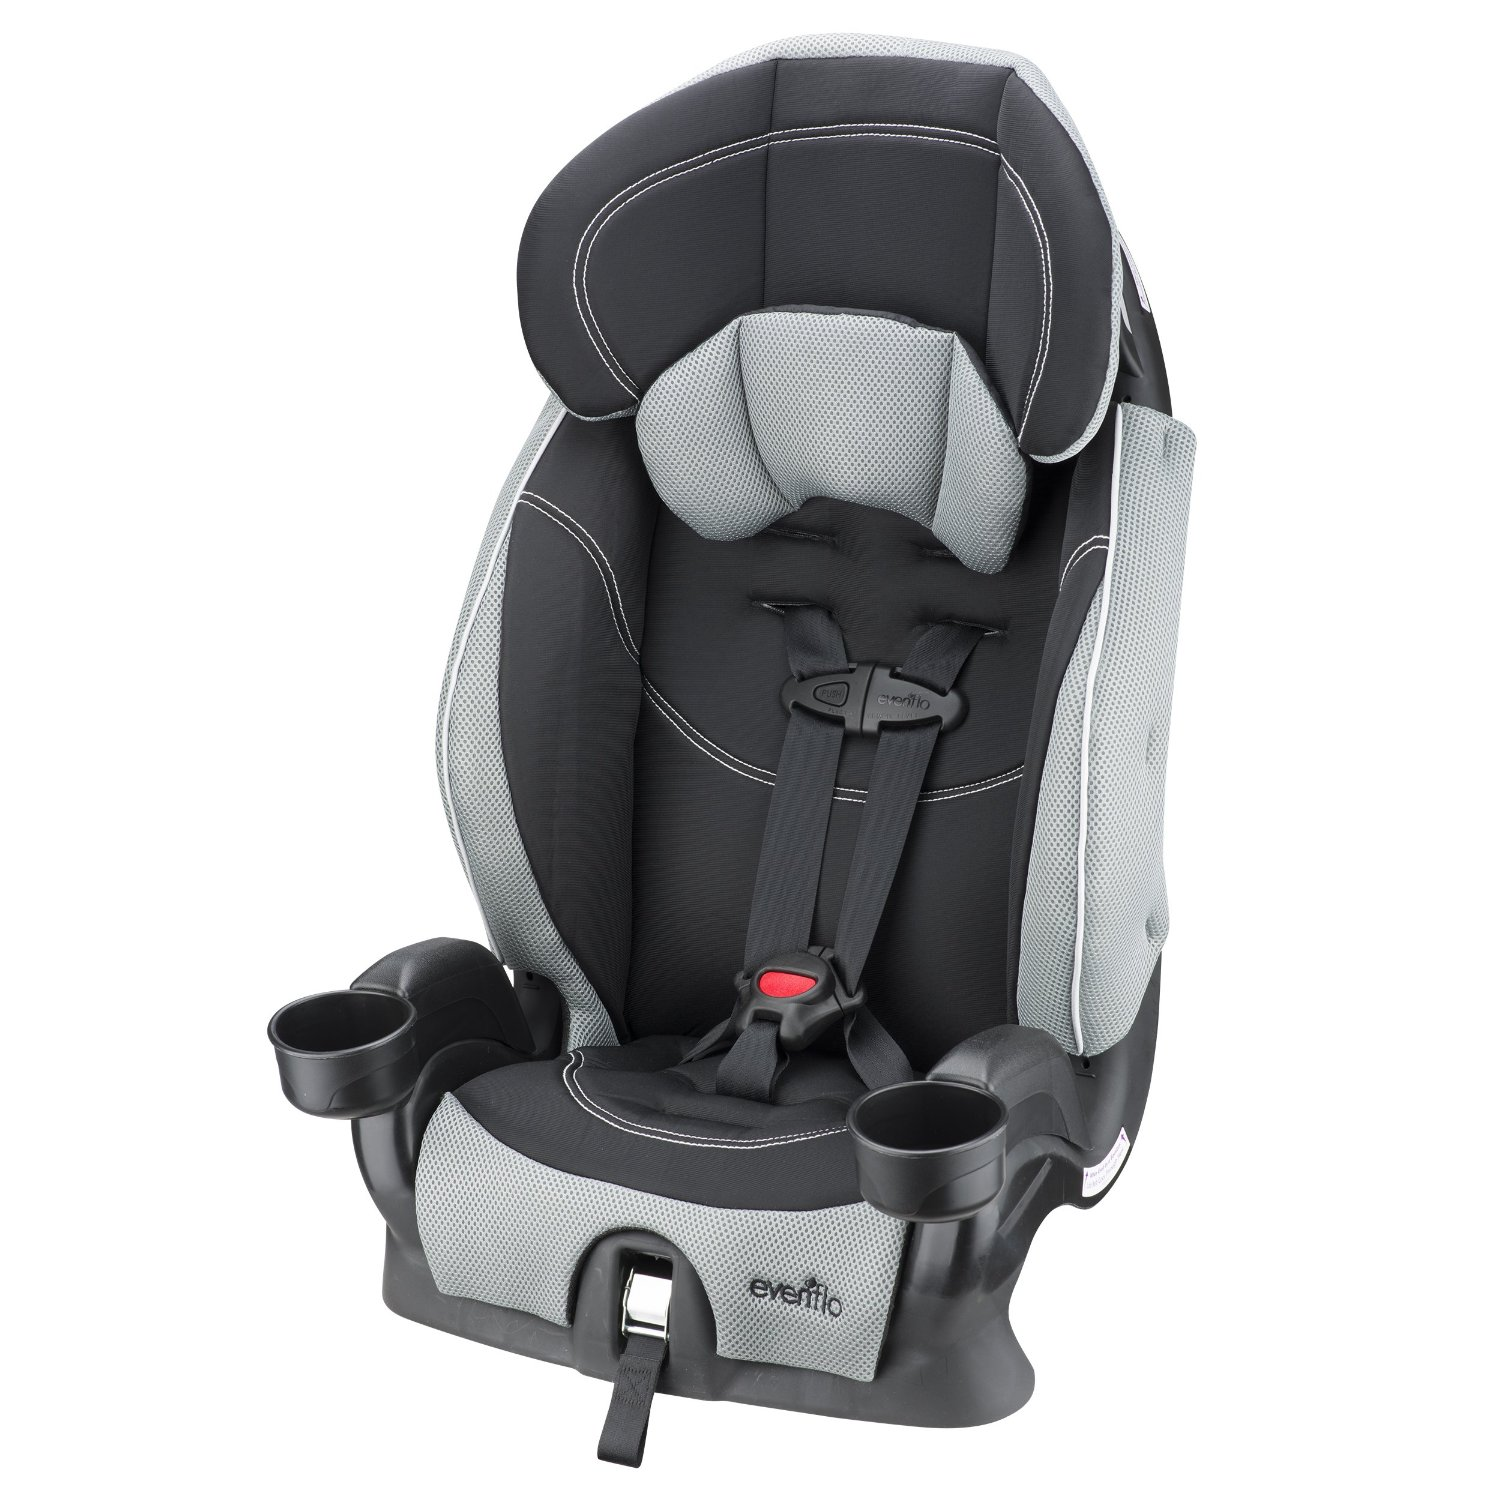 evenflo chase lx harnessed booster, high back booster seat, best high back booster seat, child safety seat, booster seat for cars, best booster seat for cars